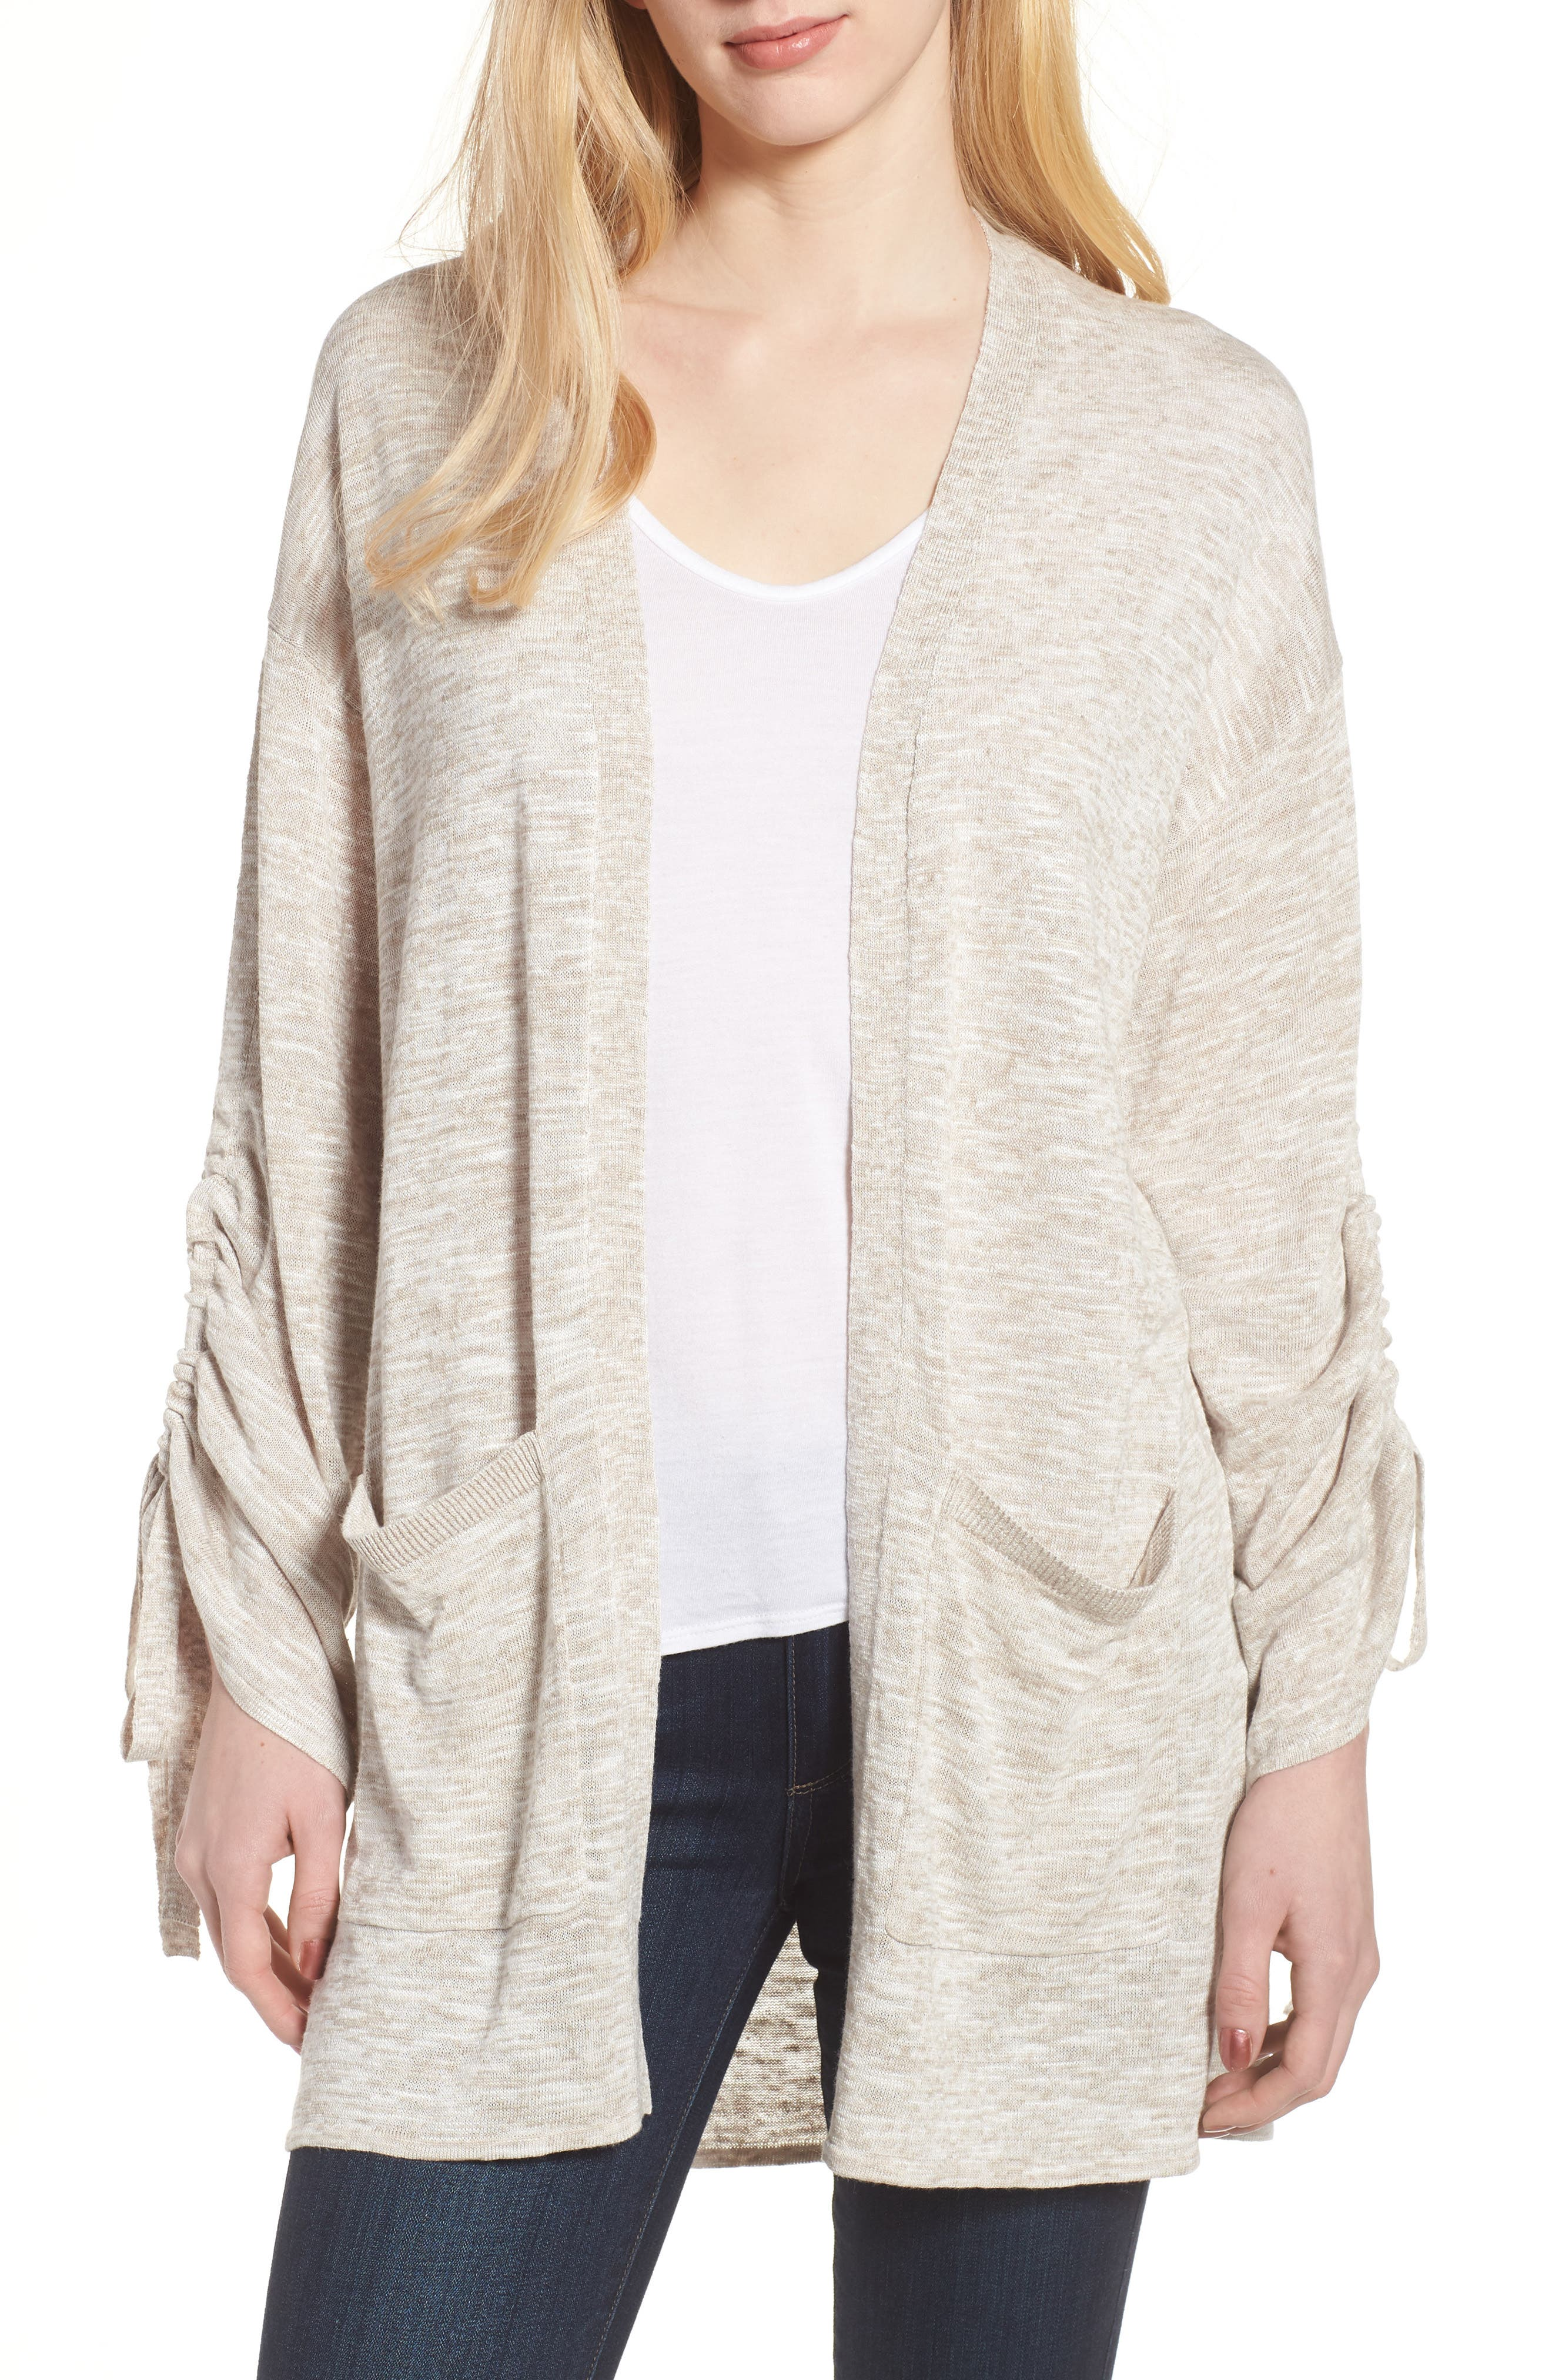 Ruched Sleeve Cardigan,                             Main thumbnail 1, color,                             Beige Linen- White Slubs